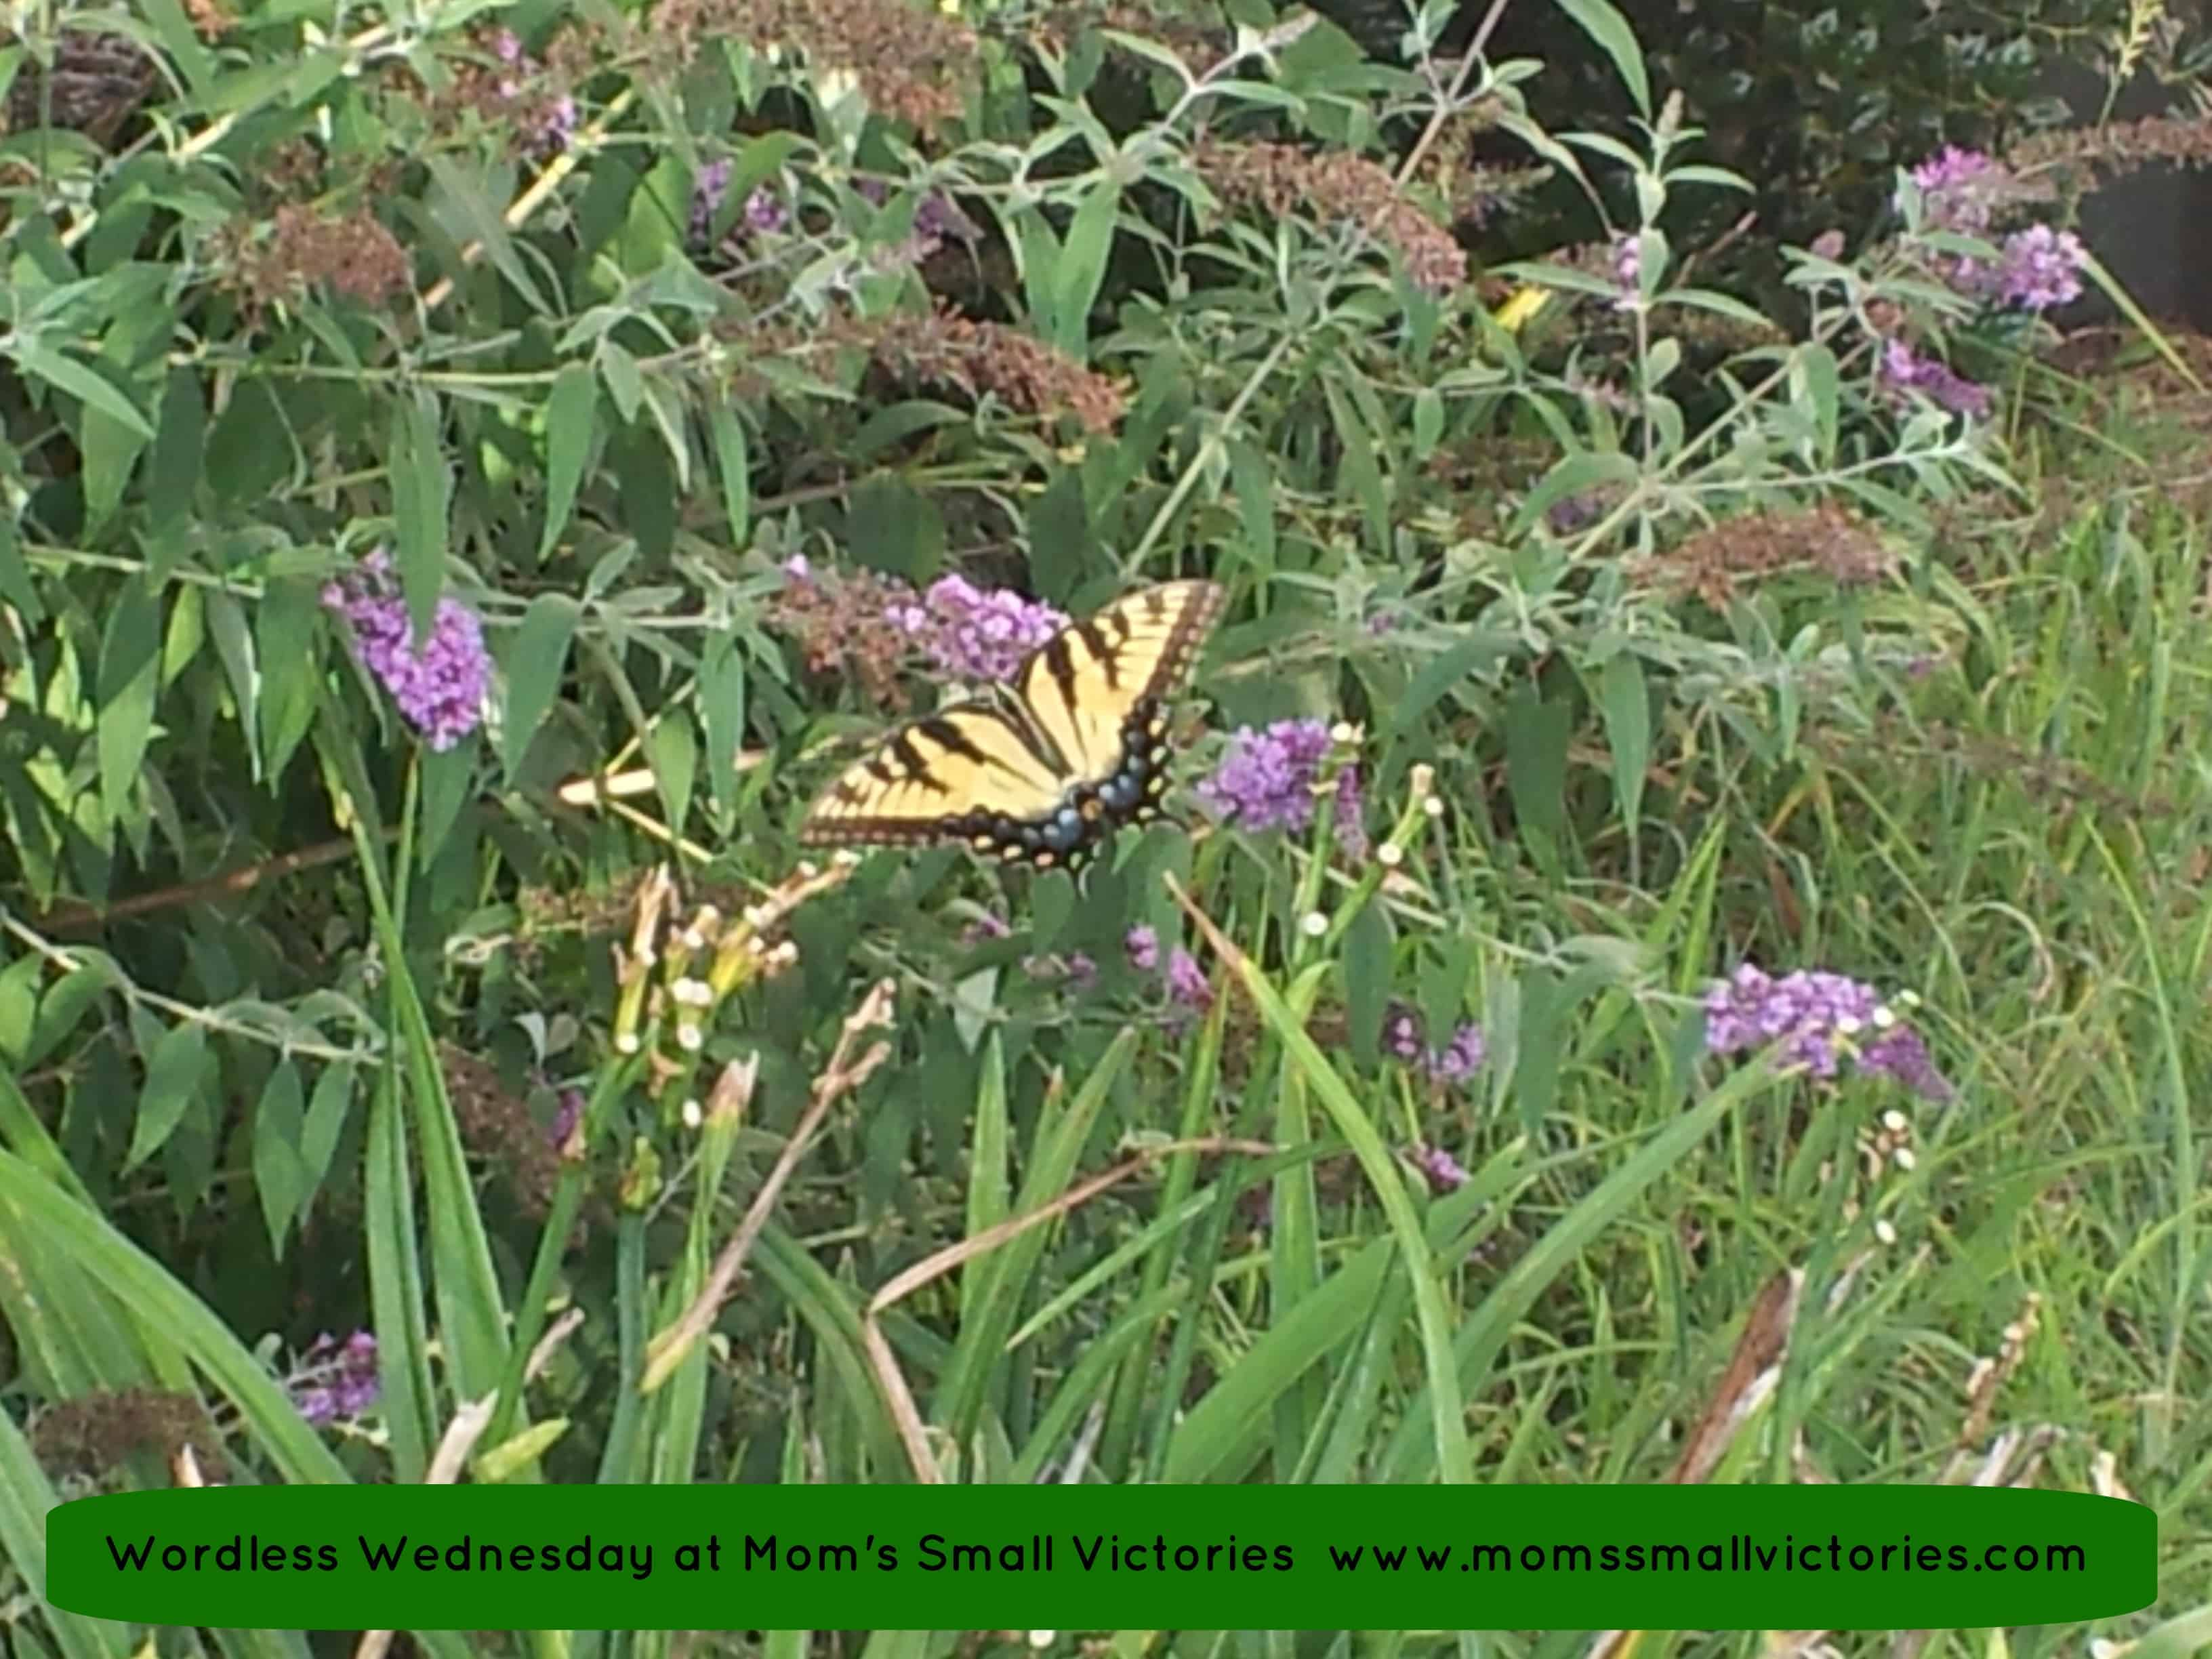 Wordless Wednesday: Beautiful Butterfly